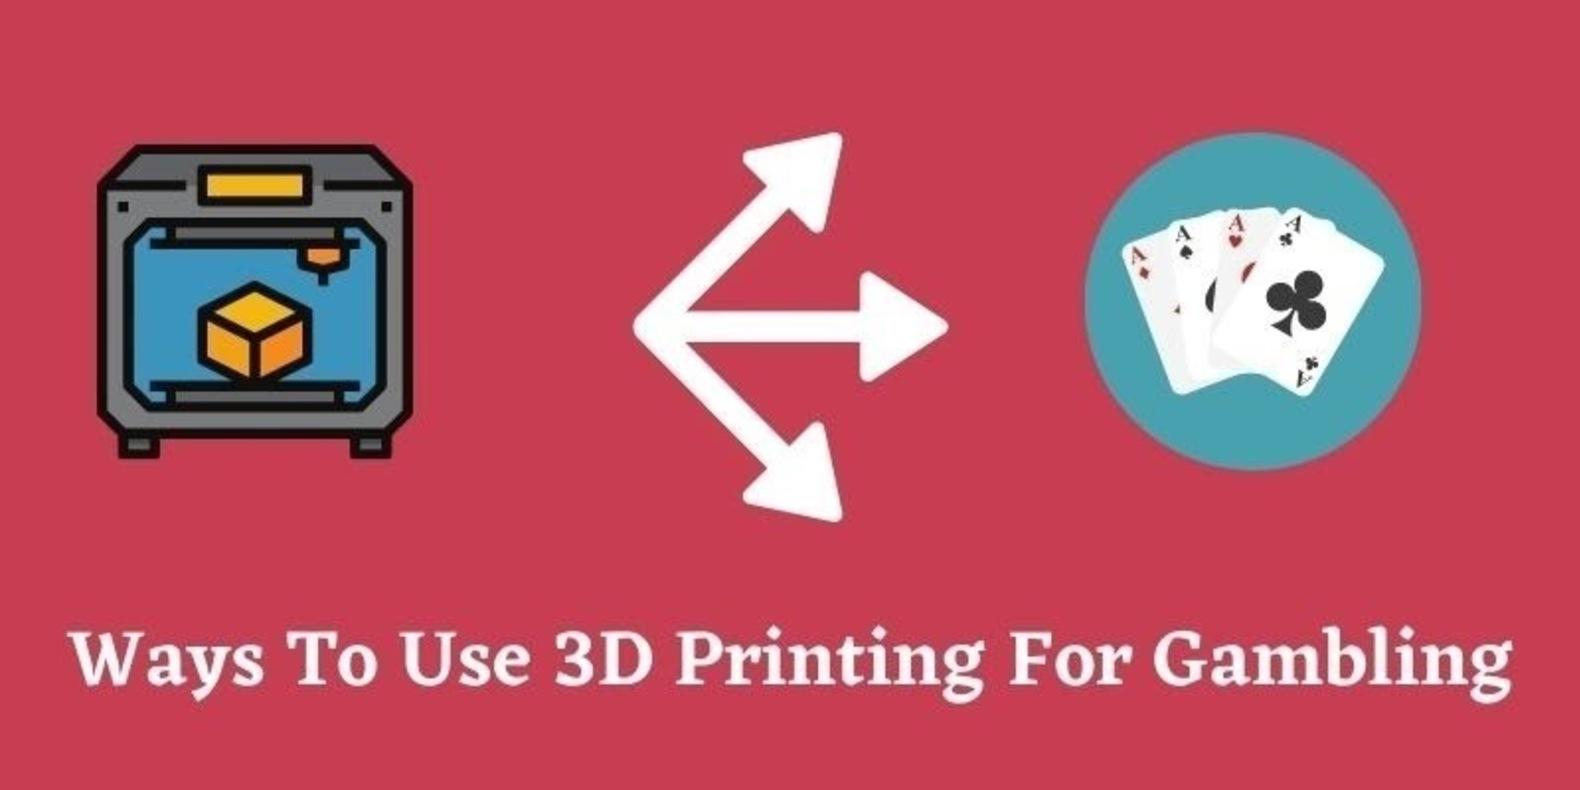 3 Ways To Use 3D Printing For Gaming